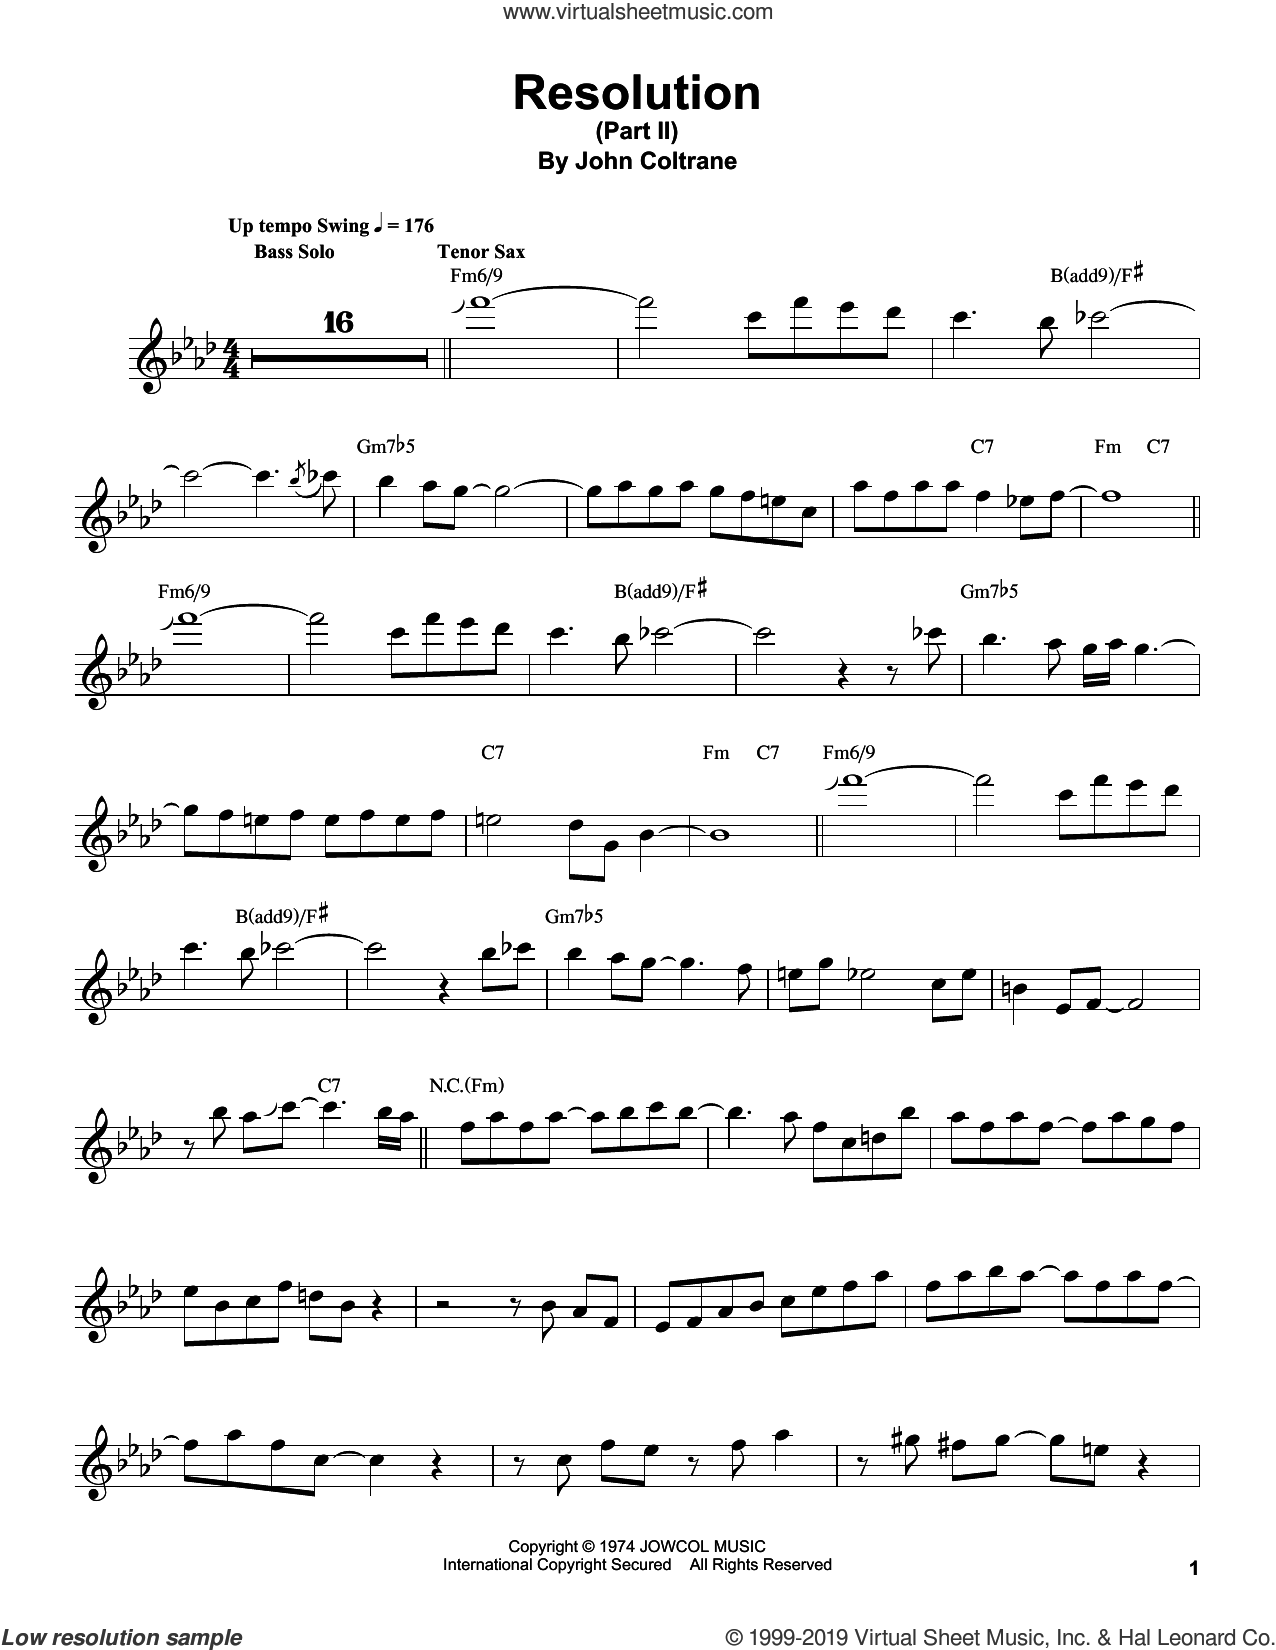 Resolution (Part II) sheet music for tenor saxophone solo (transcription) by John Coltrane, intermediate tenor saxophone (transcription)